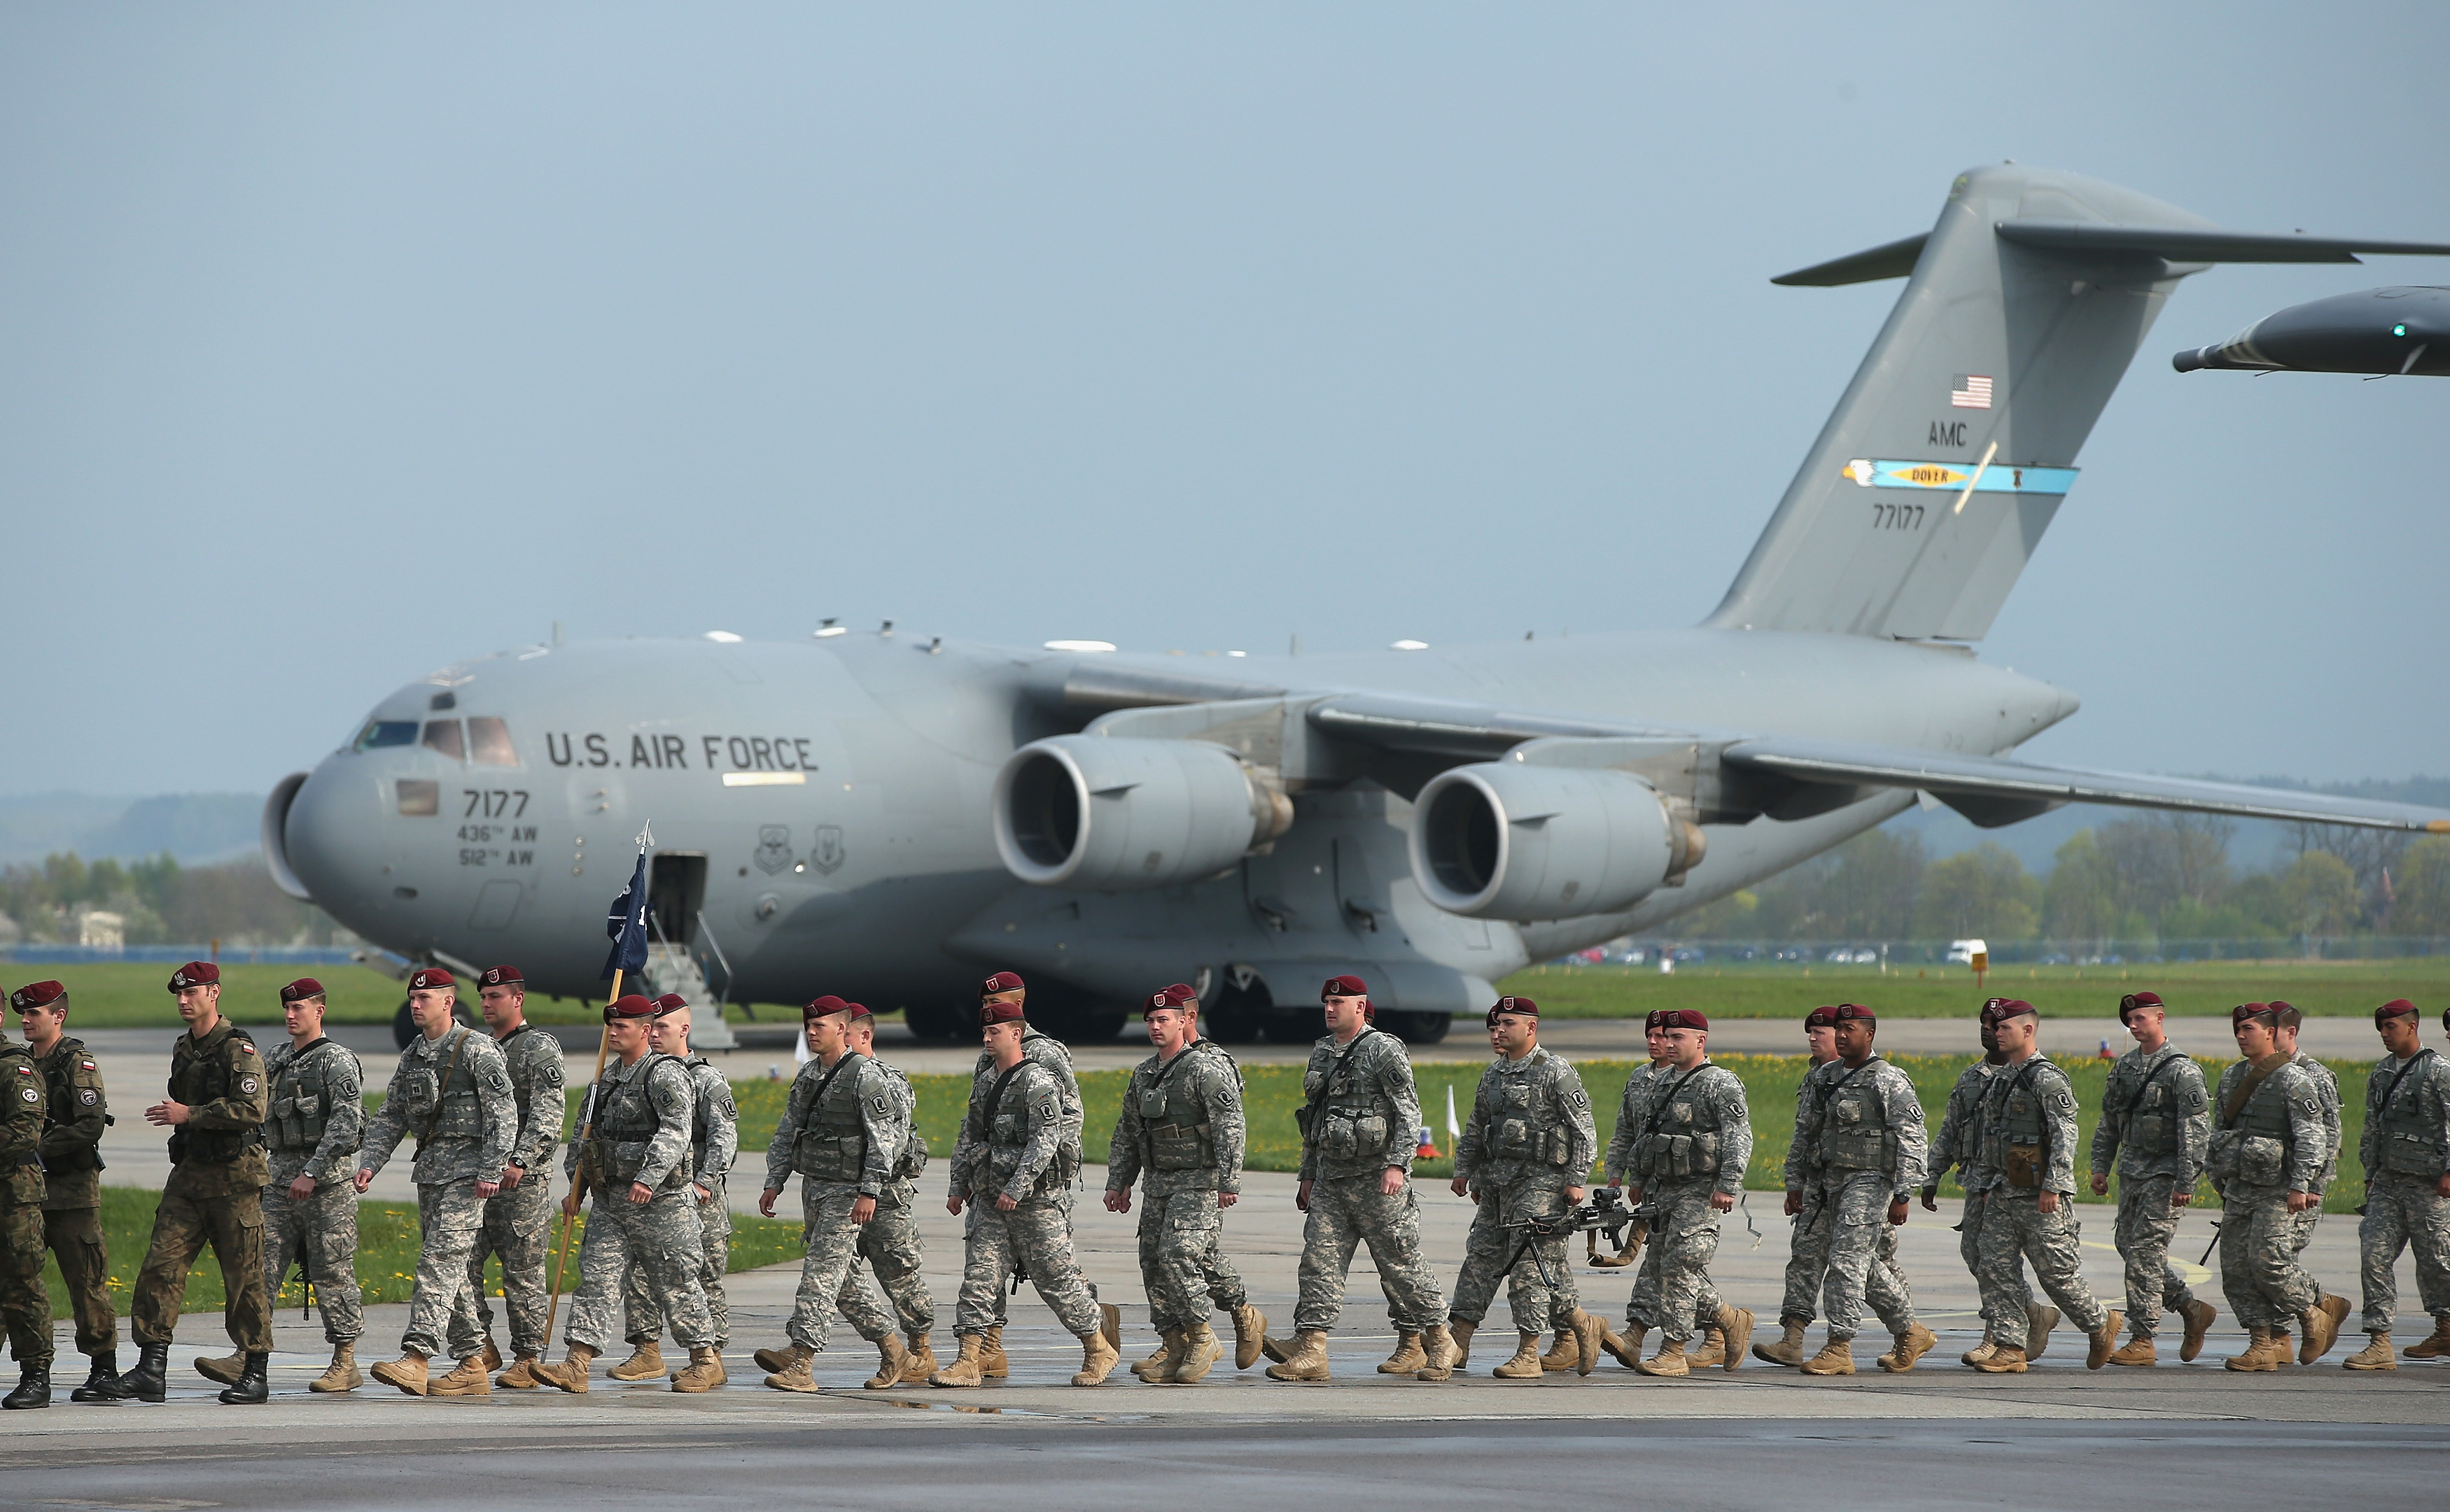 SWIDWIN, POLAND - APRIL 23: Members of the U.S. Army 173rd Airborne Brigade disembark upon their arrival by plane at a Polish air force base on April 23, 2014 in Swidwin, Poland. Approximately 150 U.S. troops, as well as another 450 destined for the three Baltic states in coming days, will participate in bilateral military exercises over the coming weeks in a sign of commitment among NATO members. Tensions are rising in eastern Ukraine between Russian separatists and Ukrainian authorities and NATO is seeking to reassure its own members located close to Russia. (Photo by Sean Gallup/Getty Images)